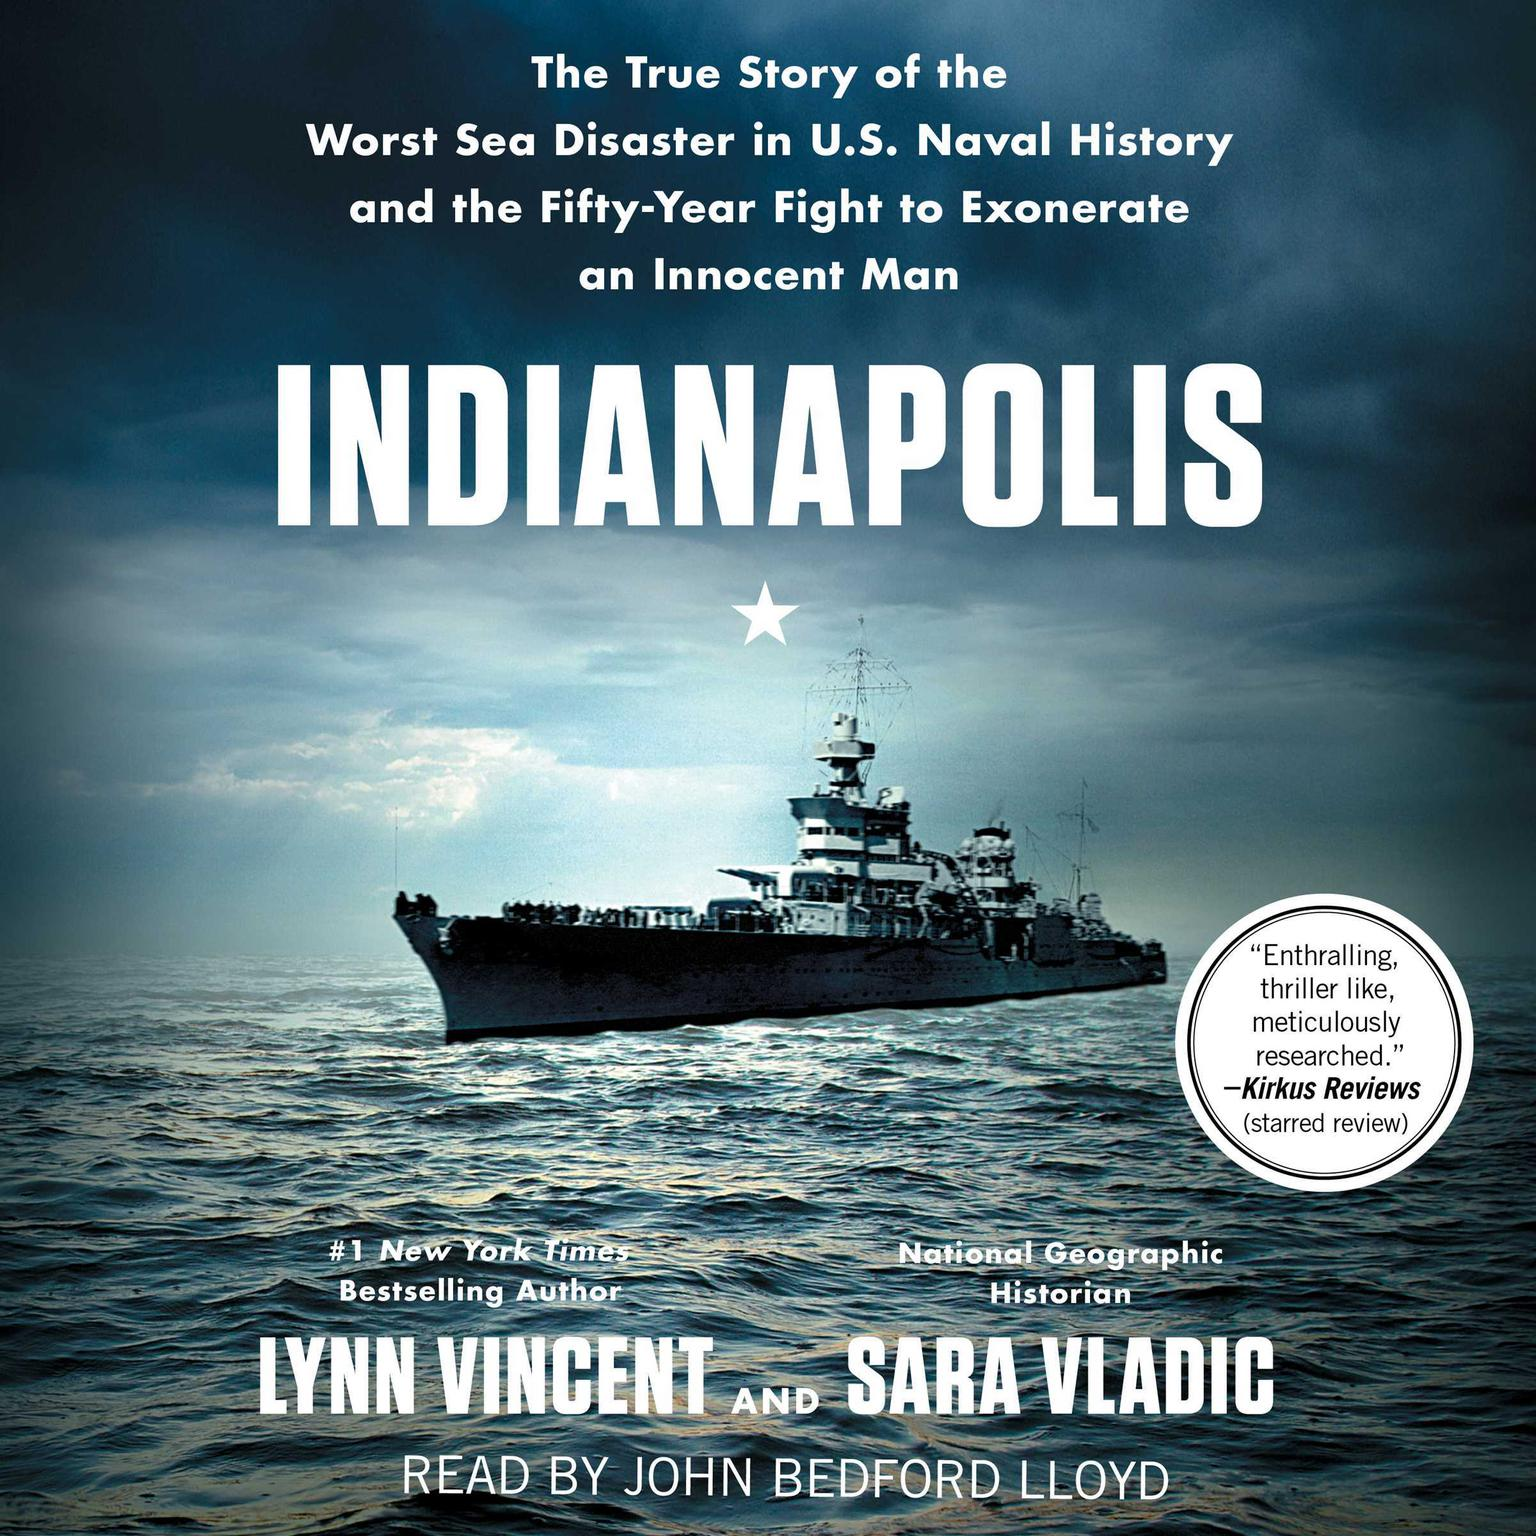 Indianapolis: The True Story of the Worst Sea Disaster in US Naval History and the Fifty-Year Fight to Exonerate an Innocent Man Audiobook, by Lynn Vincent